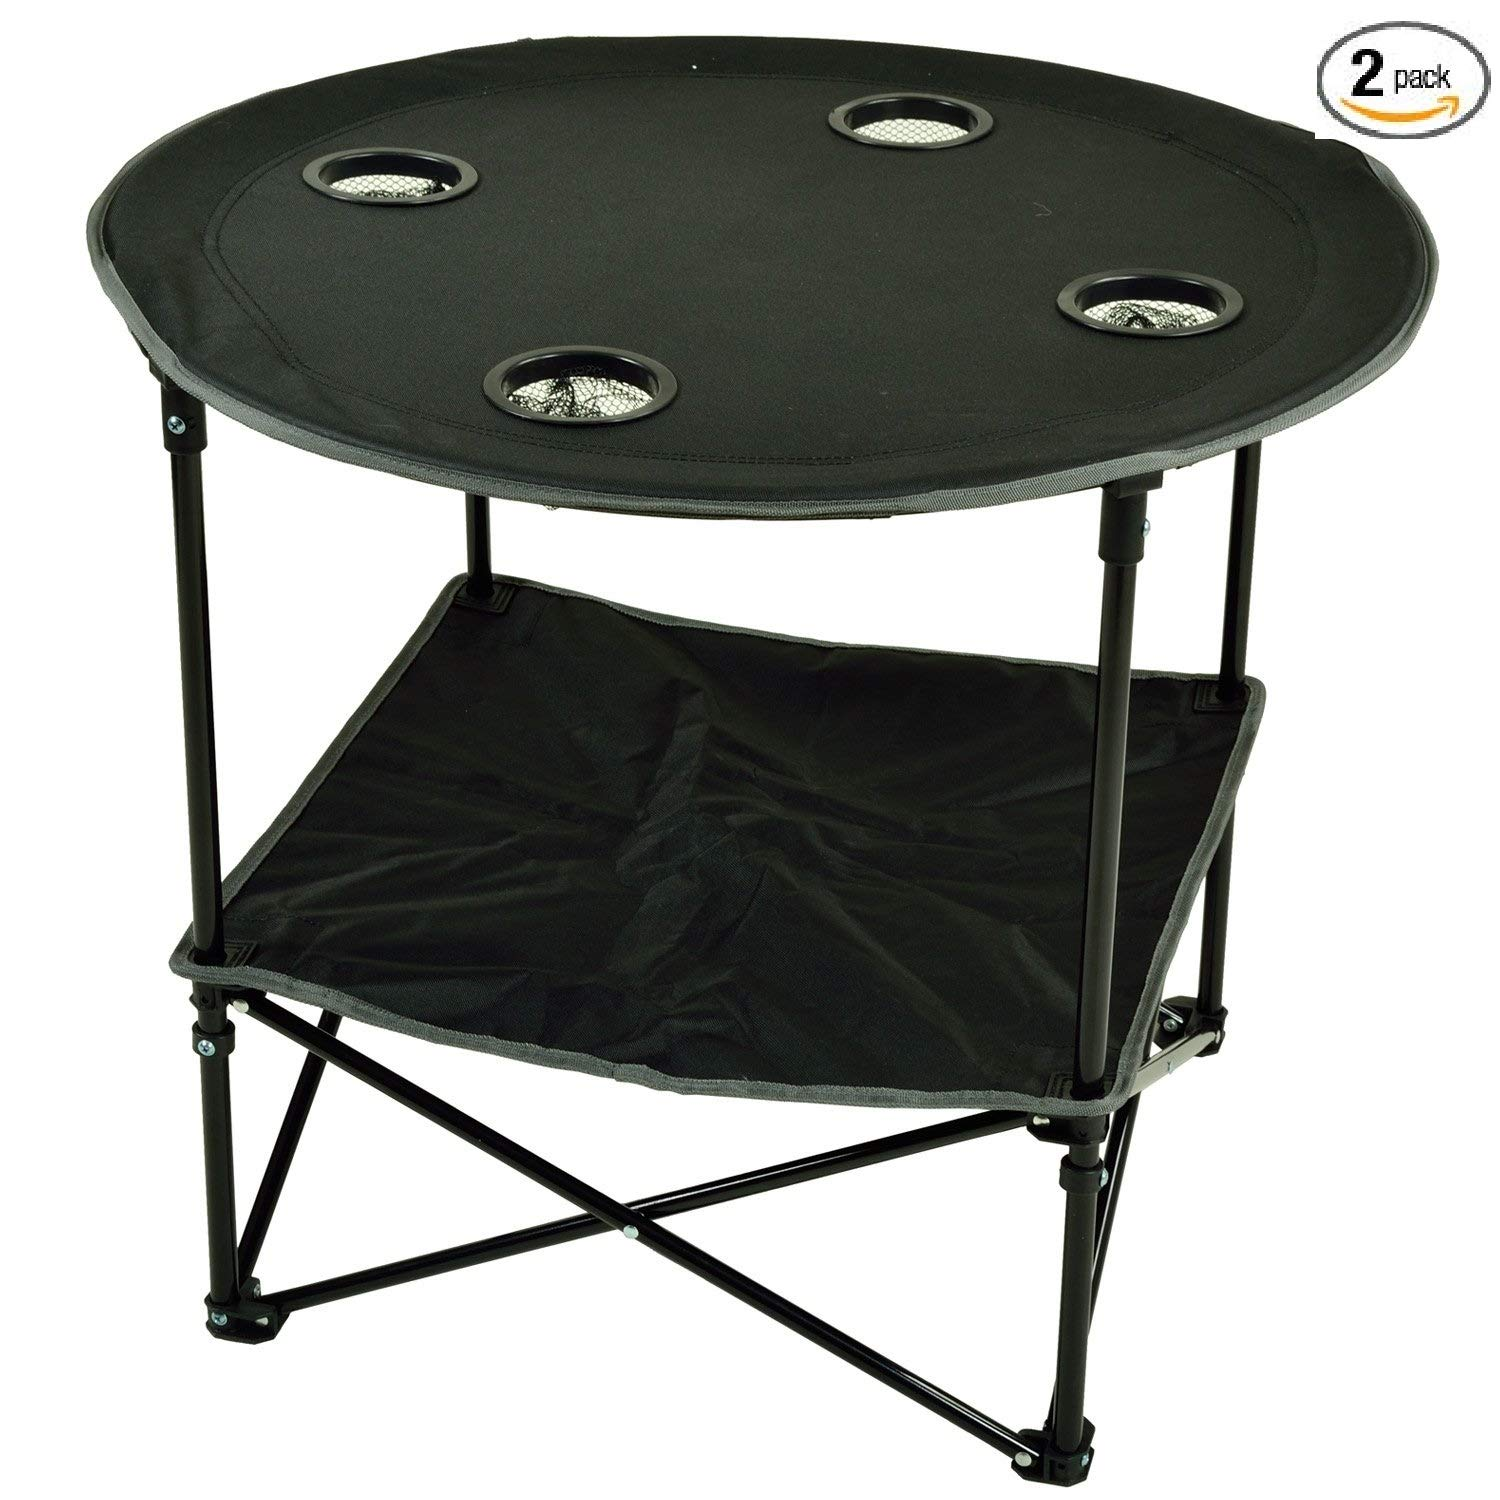 Picnic at Ascot Travel Folding Table for Picnics and Tailgating, Black - Pack of 2